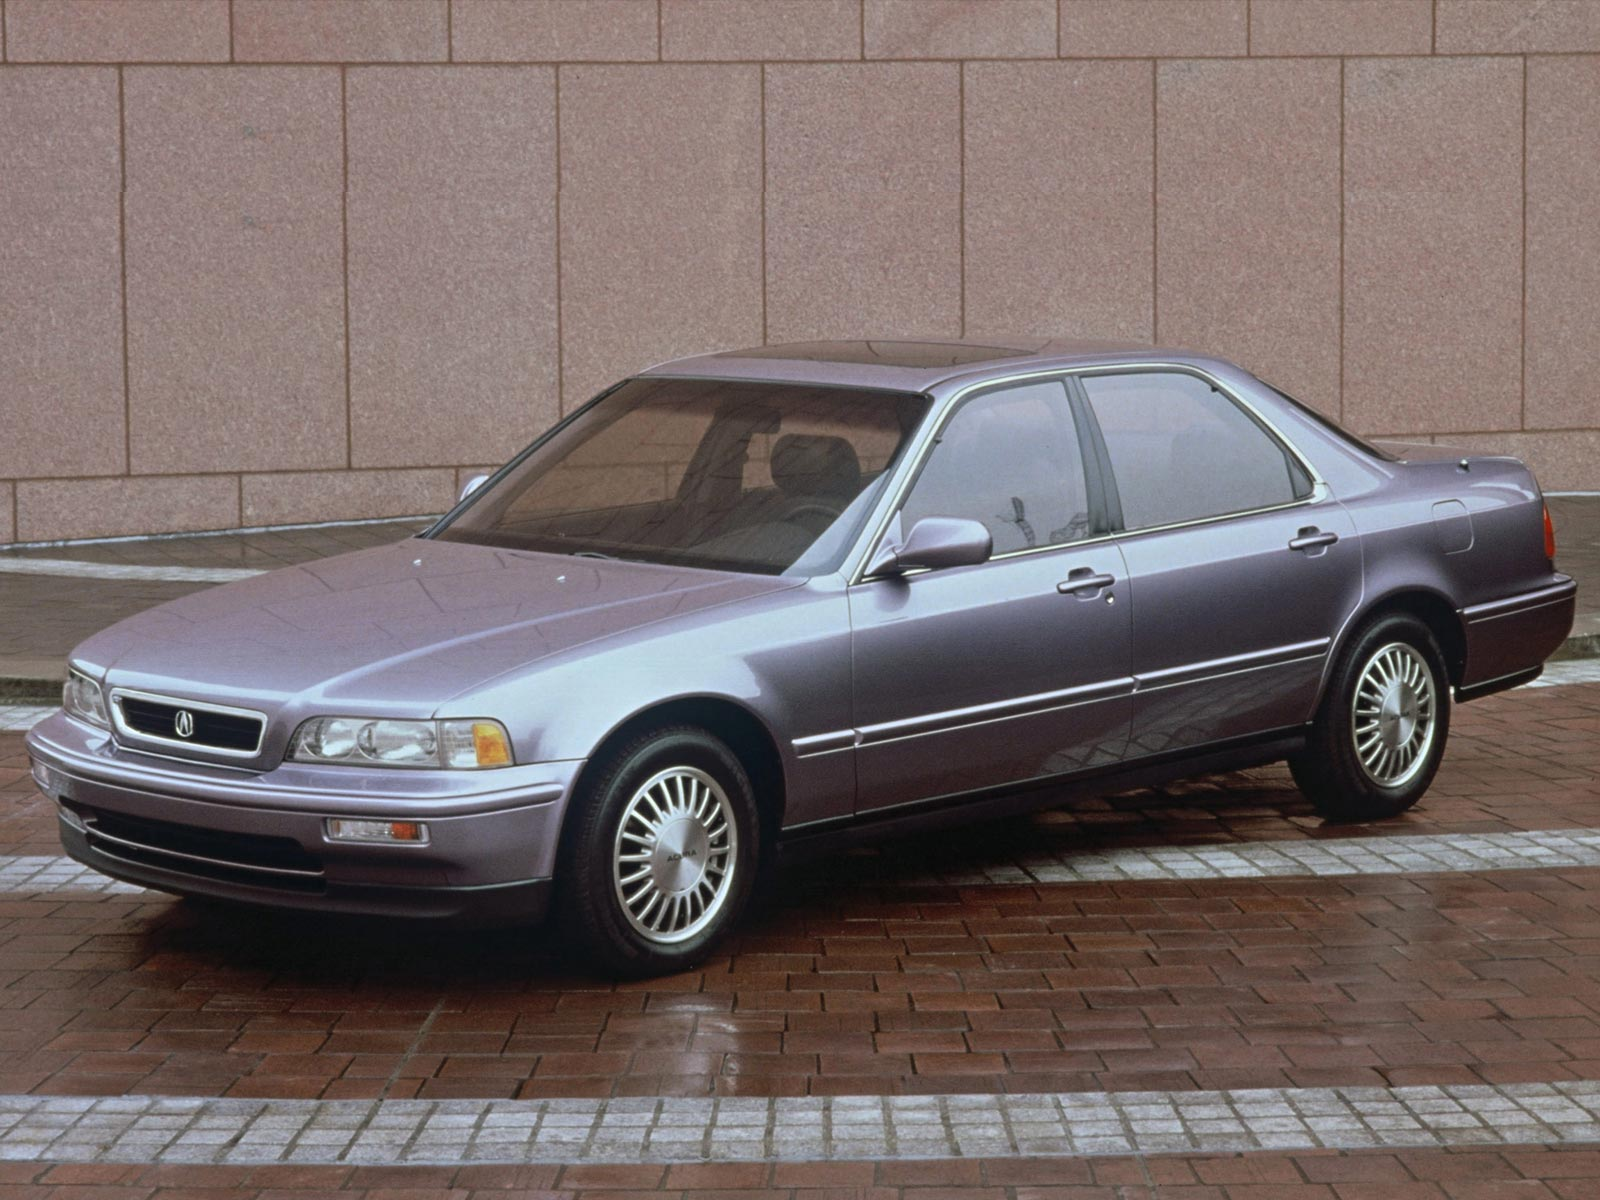 1991 Honda Legend #7